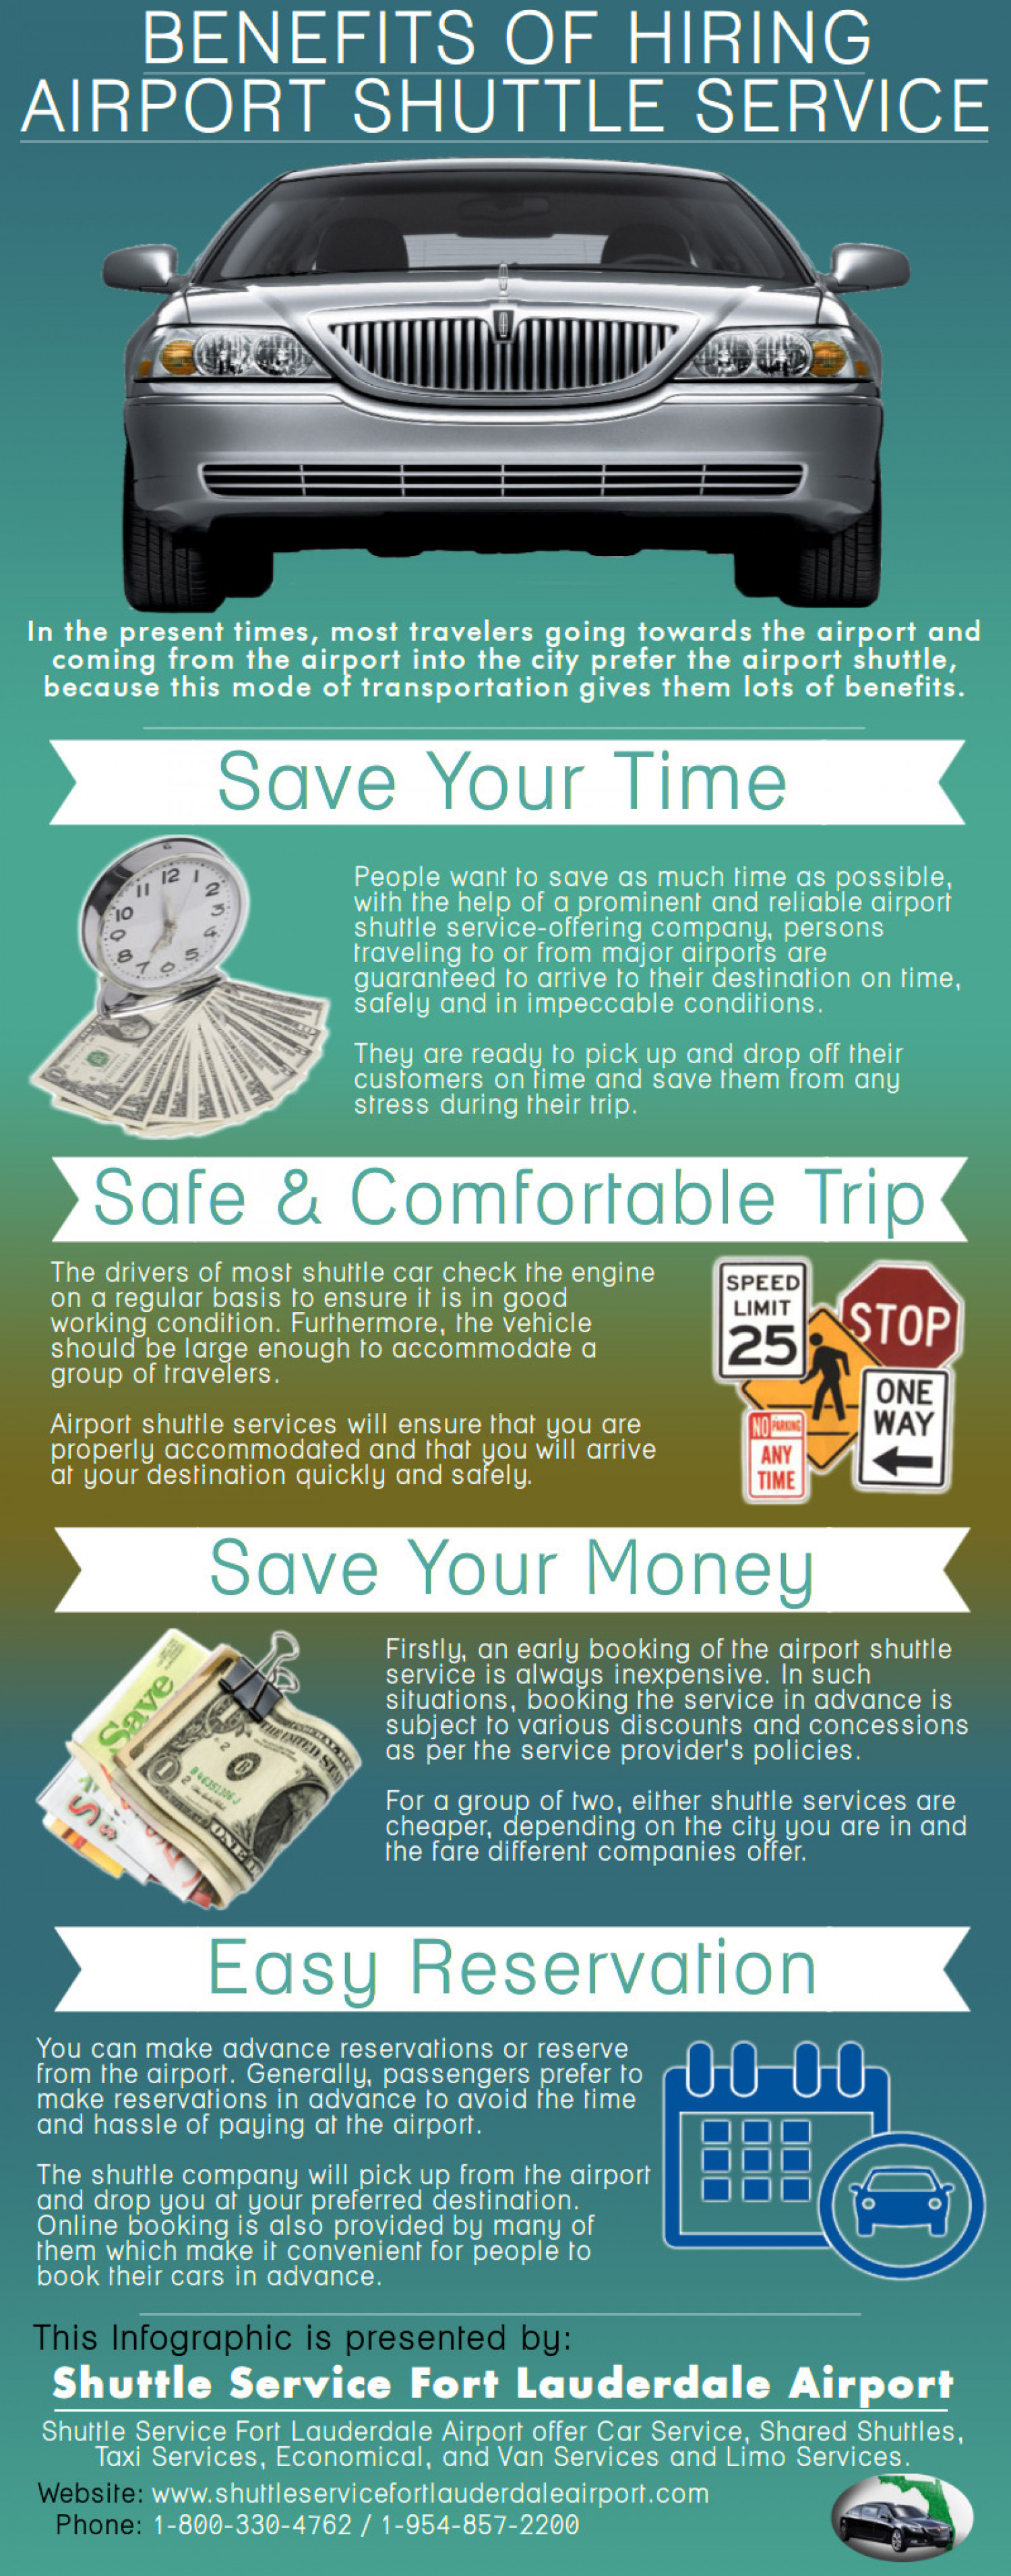 Benefits Of Hiring Airport Shuttle Service Infographic